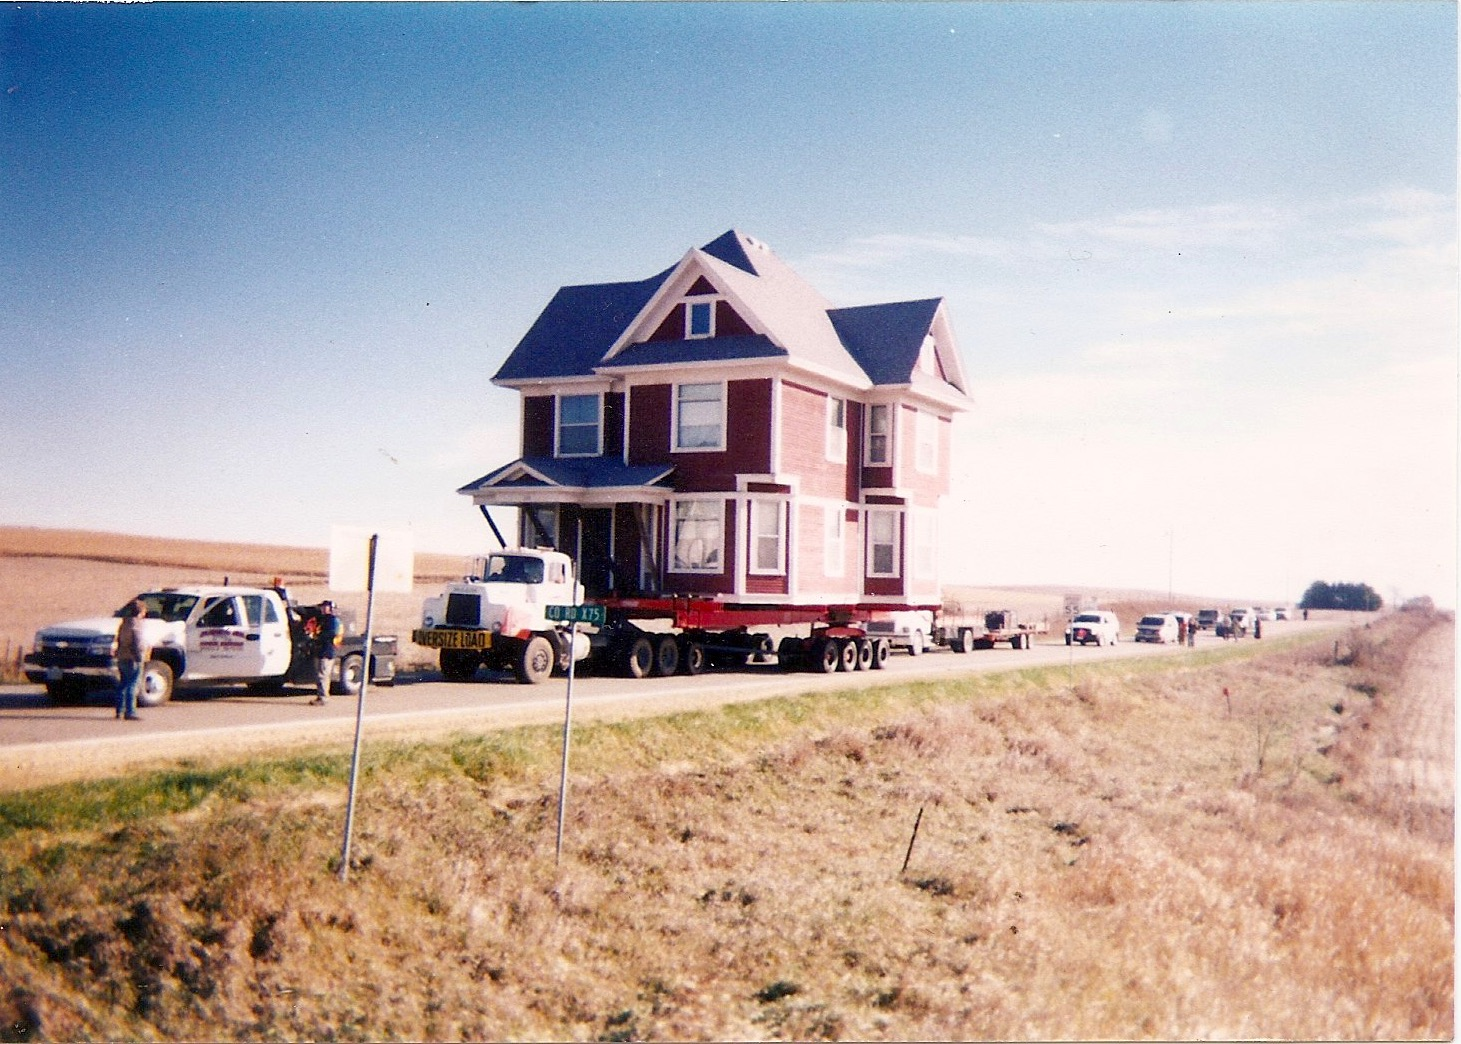 This house was featured on the Haulin House HGTV show during the Ron, Doug, and Dave era.